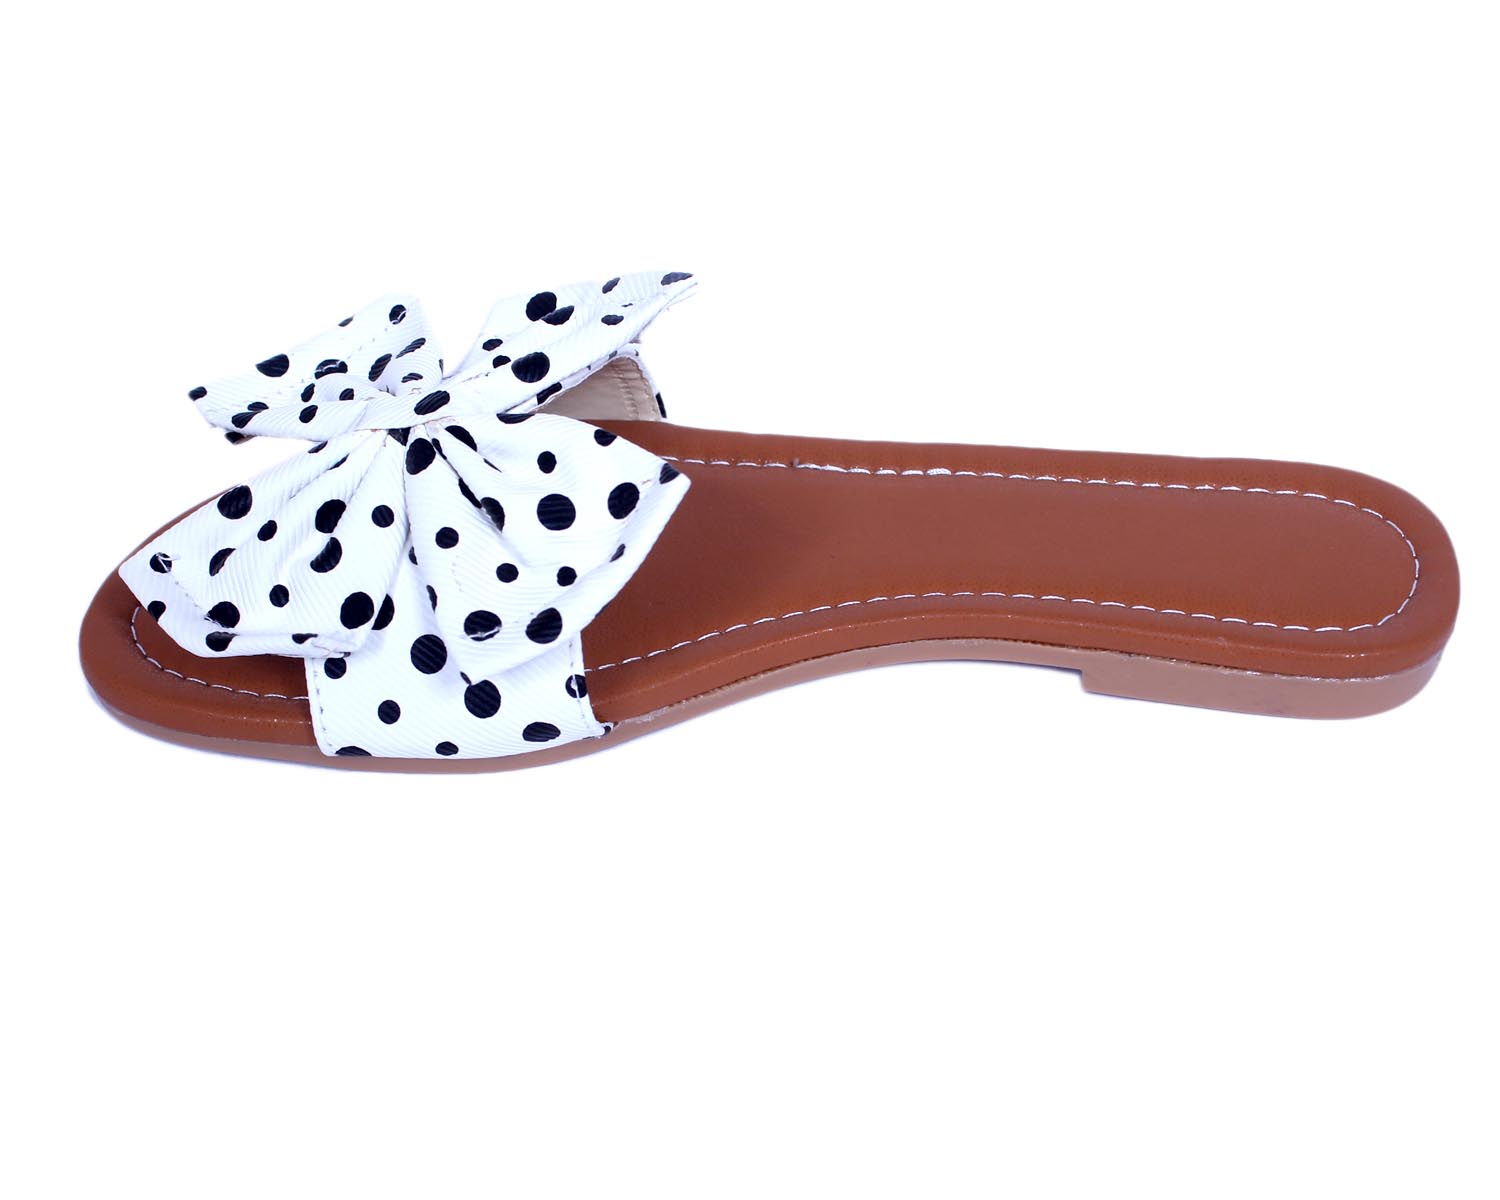 Gibelle Fancy Women's White Casual Flat Sandals GWF-029-WH (White, 36-40, 5 PAIR)